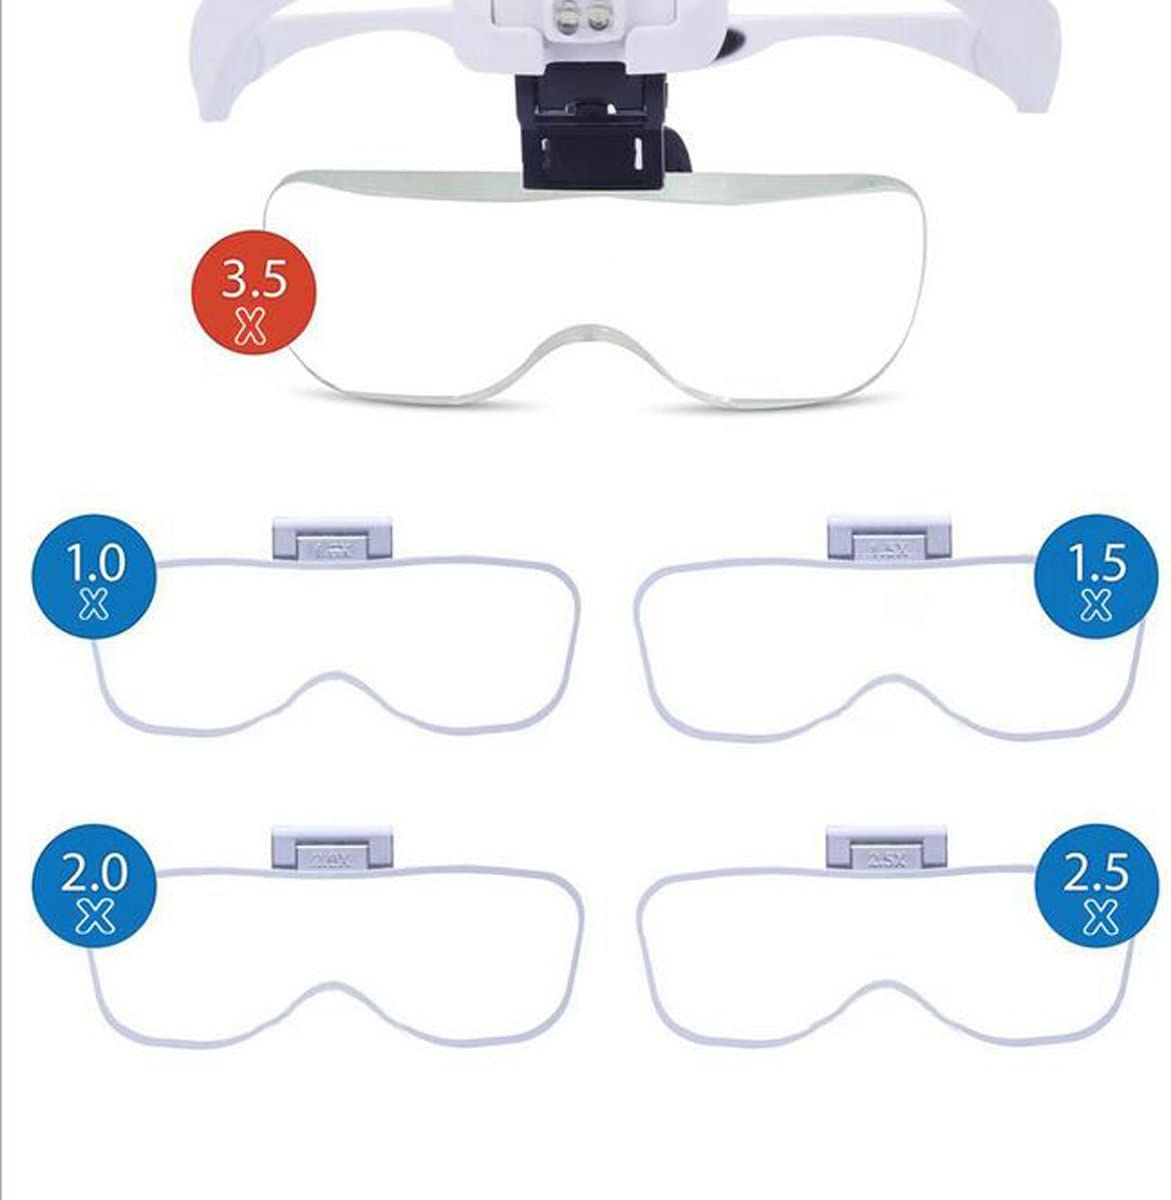 Head Mount Magnifying Glasses with Light for Reading Professional Headband Magnifier Hands Free for Jewelers 1.0X,1.5X,2.0X,2.5X,3.5X Hobby Head Magnifier Glasses Circuit Repair Crafts Watch